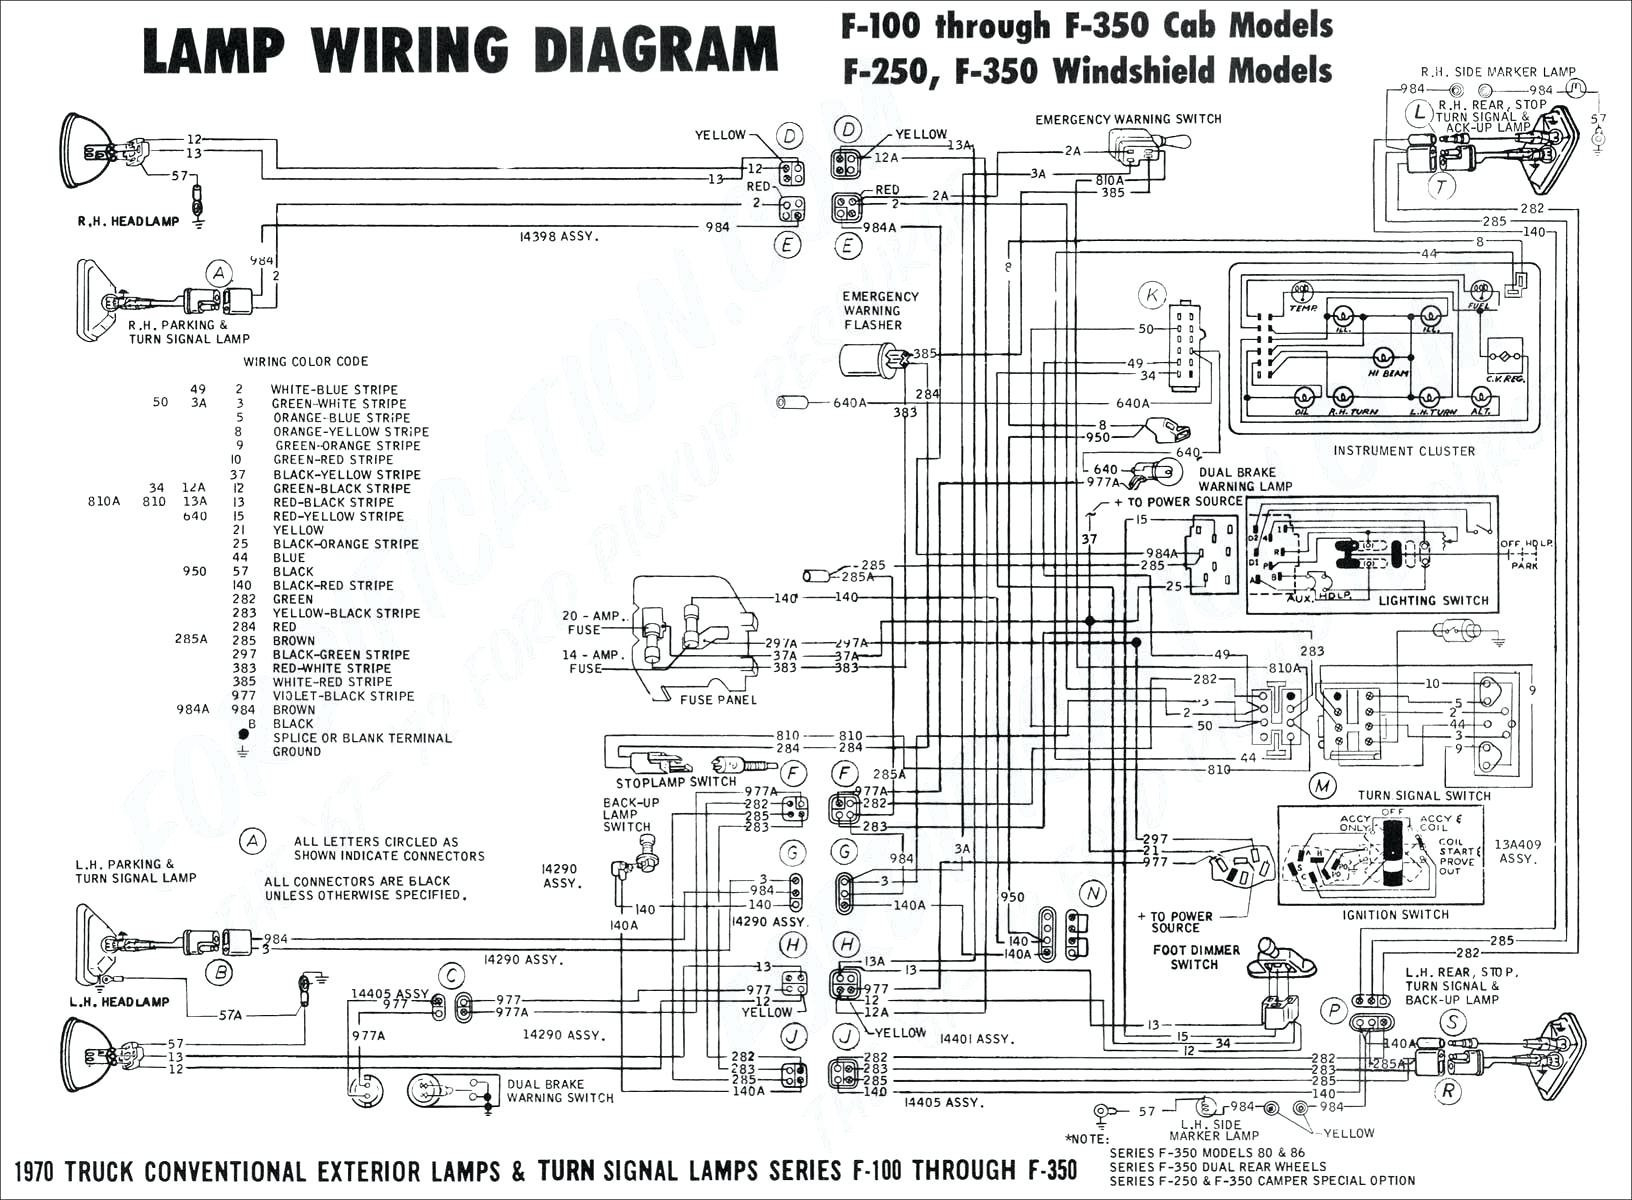 F150 Ke Light Wiring Diagram 2010 f150 headlight wiring ... Wiring Diagram For Ke Light Switch on